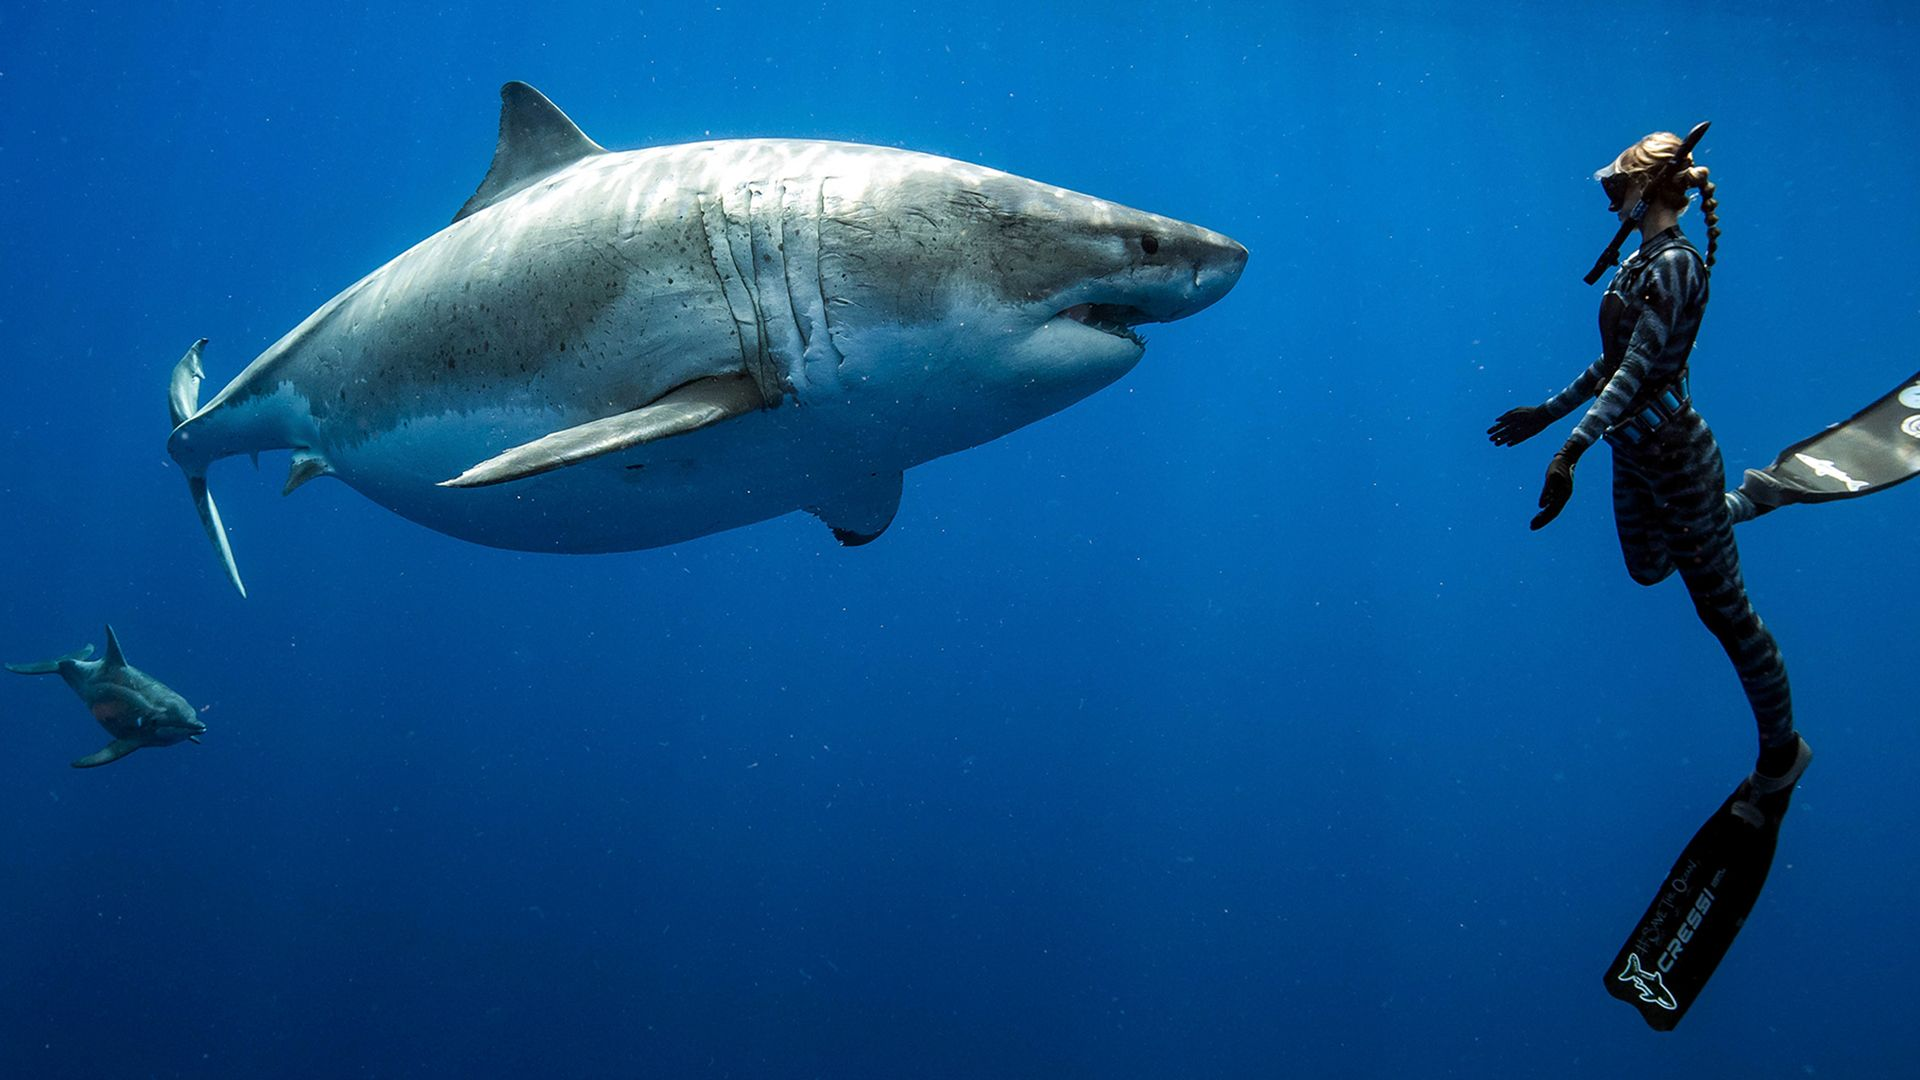 A woman diver swims with a white shark